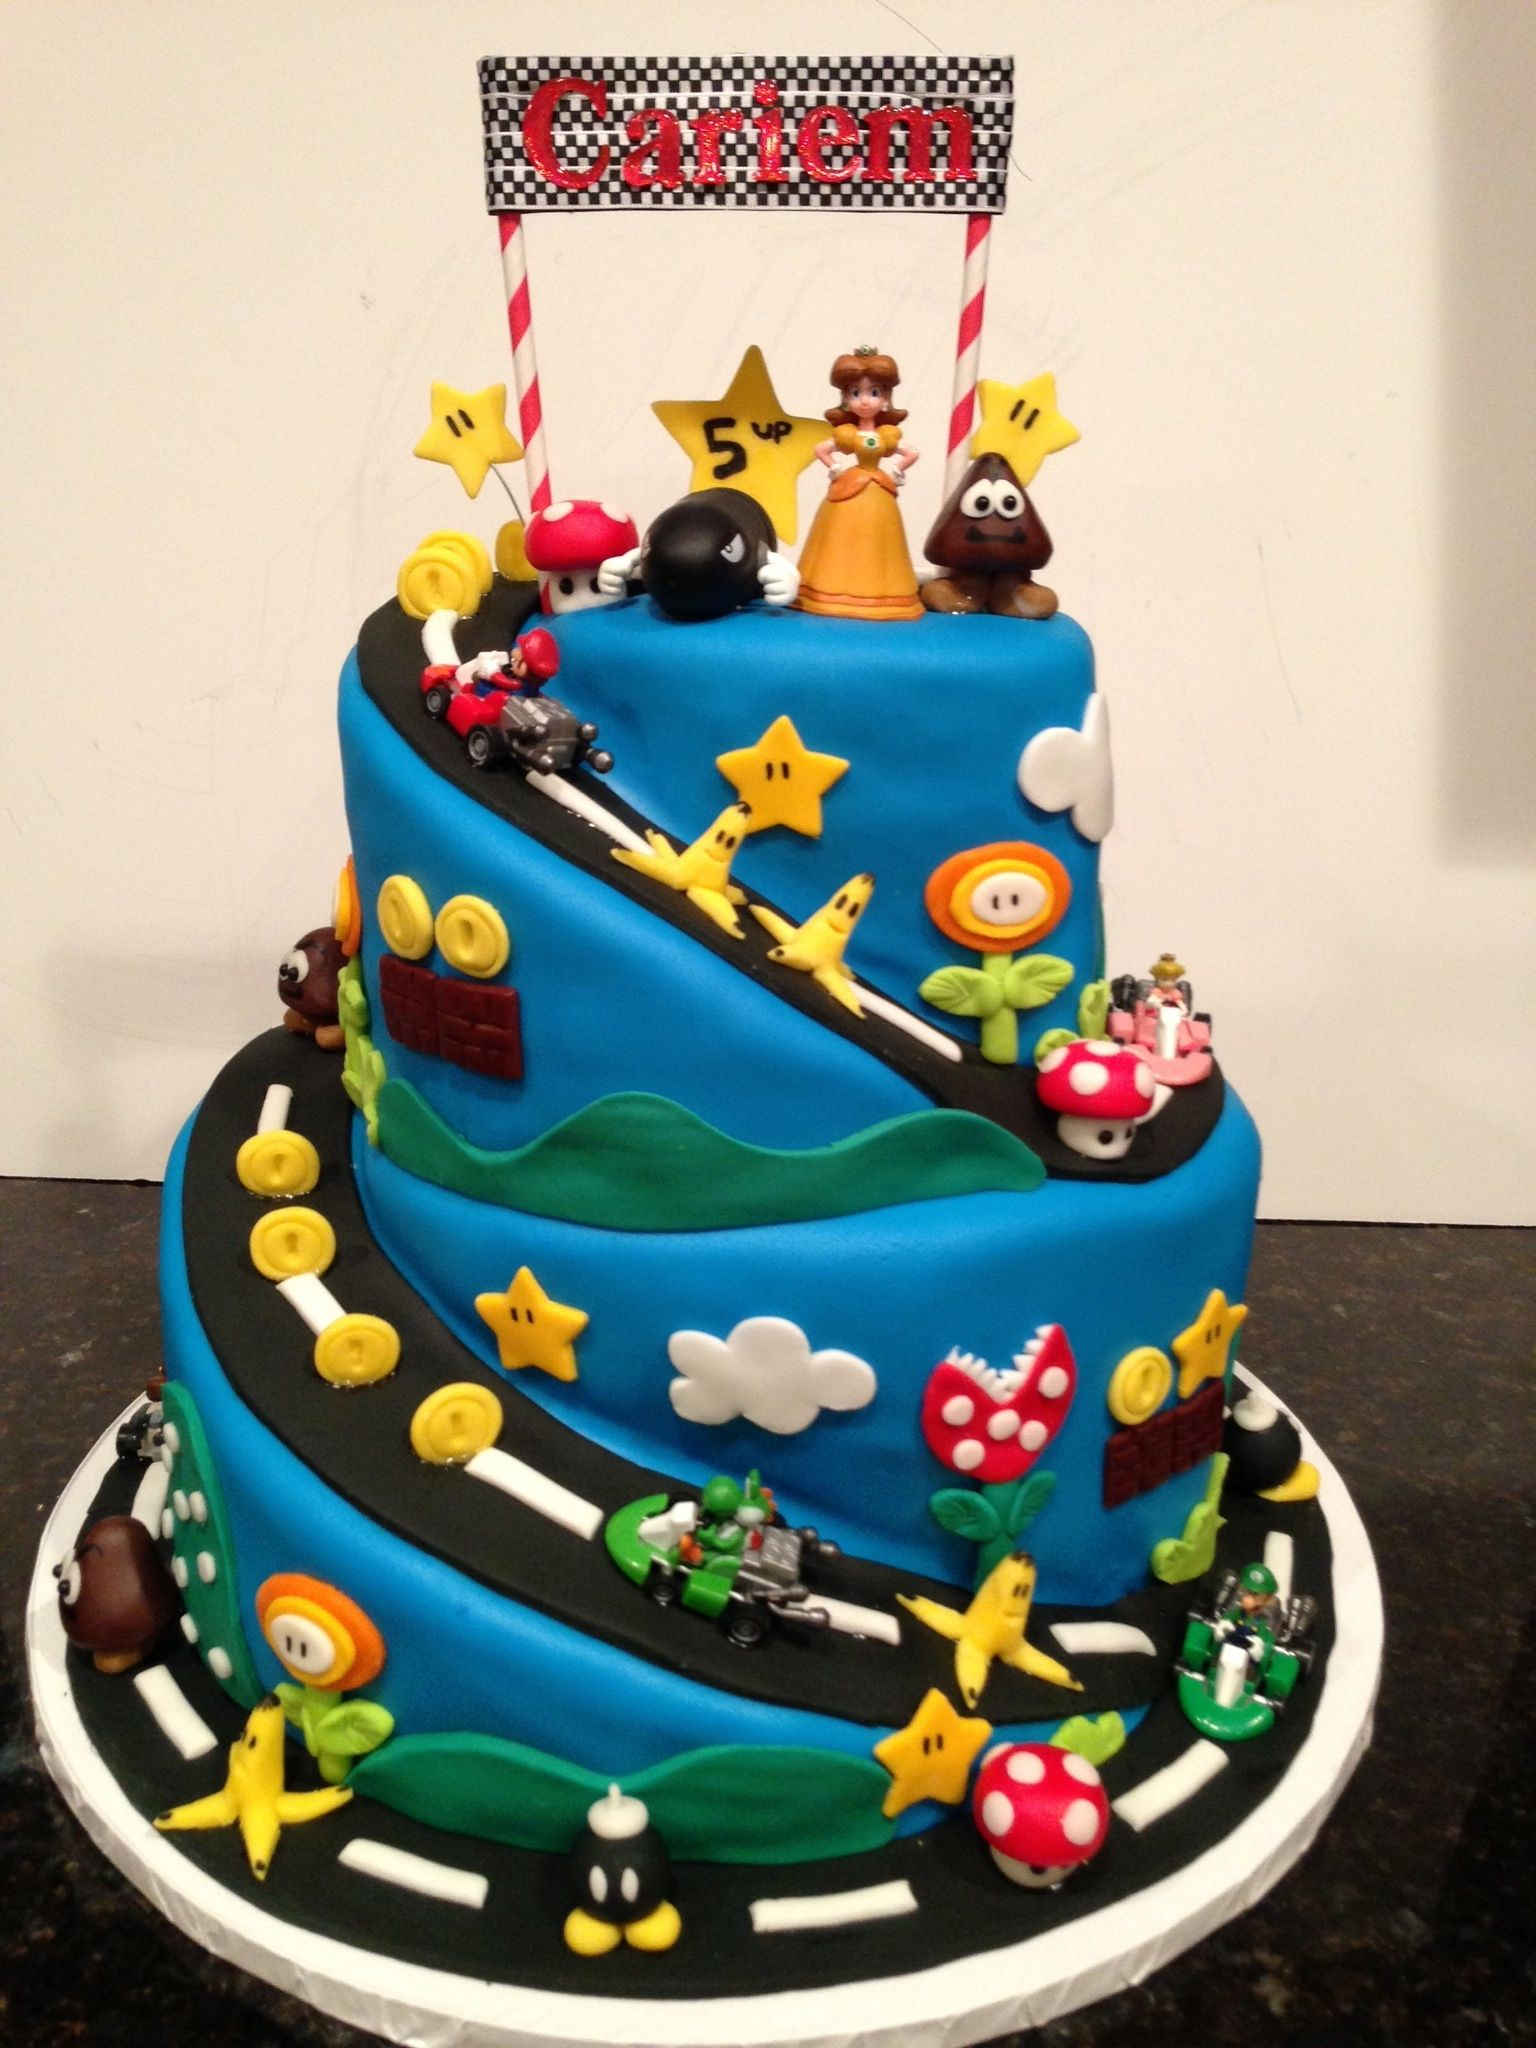 super mario brothers mario kart gluten free birthday cake cakes. Black Bedroom Furniture Sets. Home Design Ideas